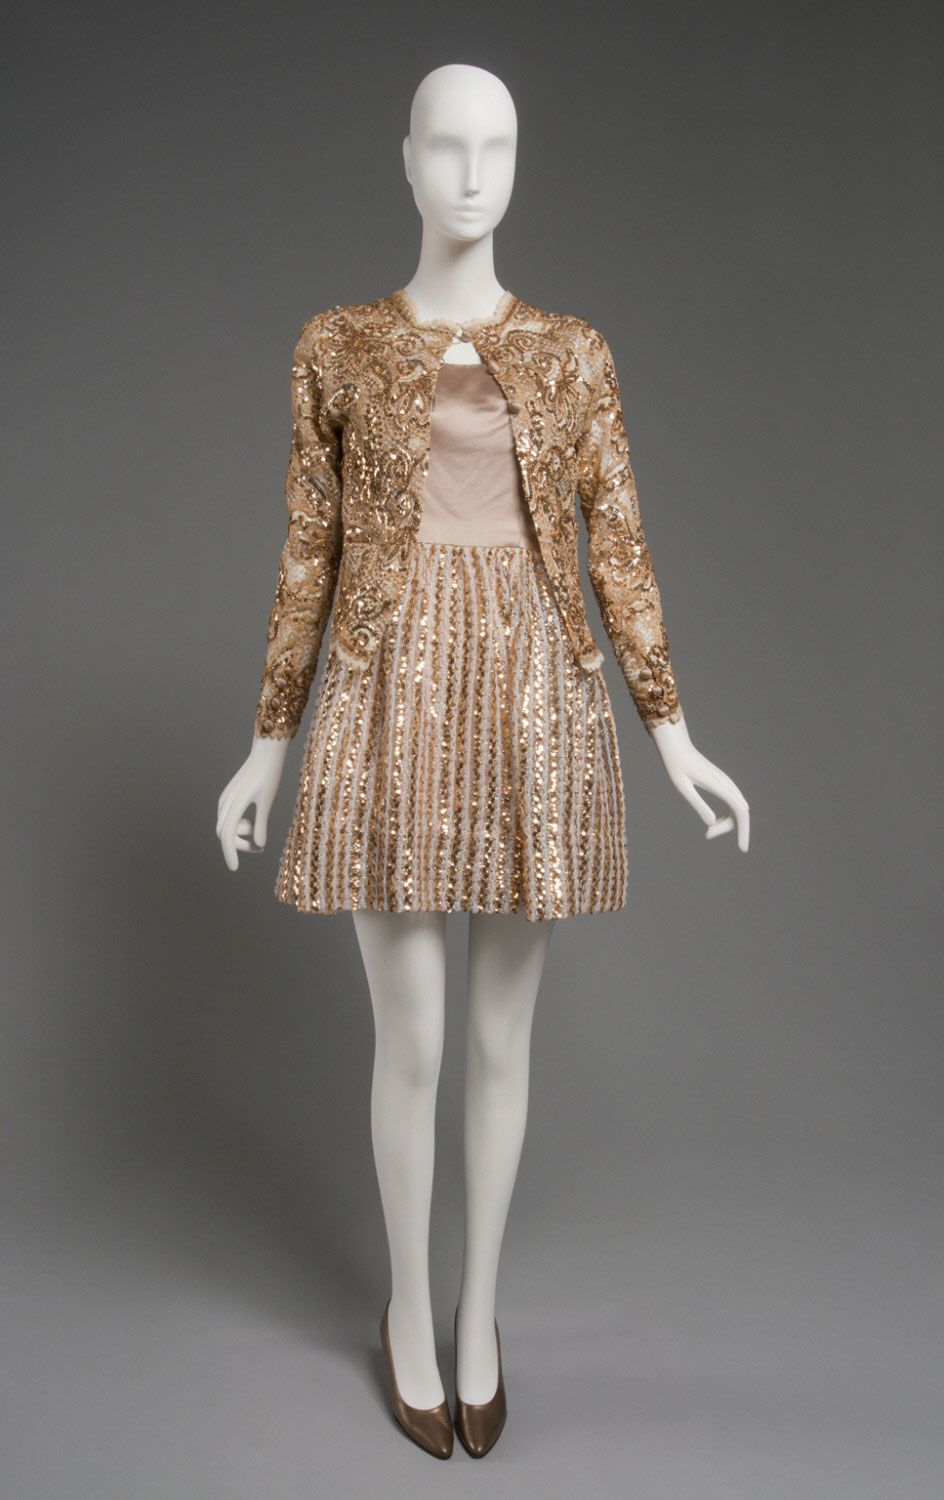 Woman S Ensemble Dress And Jacket Possibly Designed By Geoffrey Beene C Late 1960s Vintage Dresses 1960s Fashion Designers History Fashion